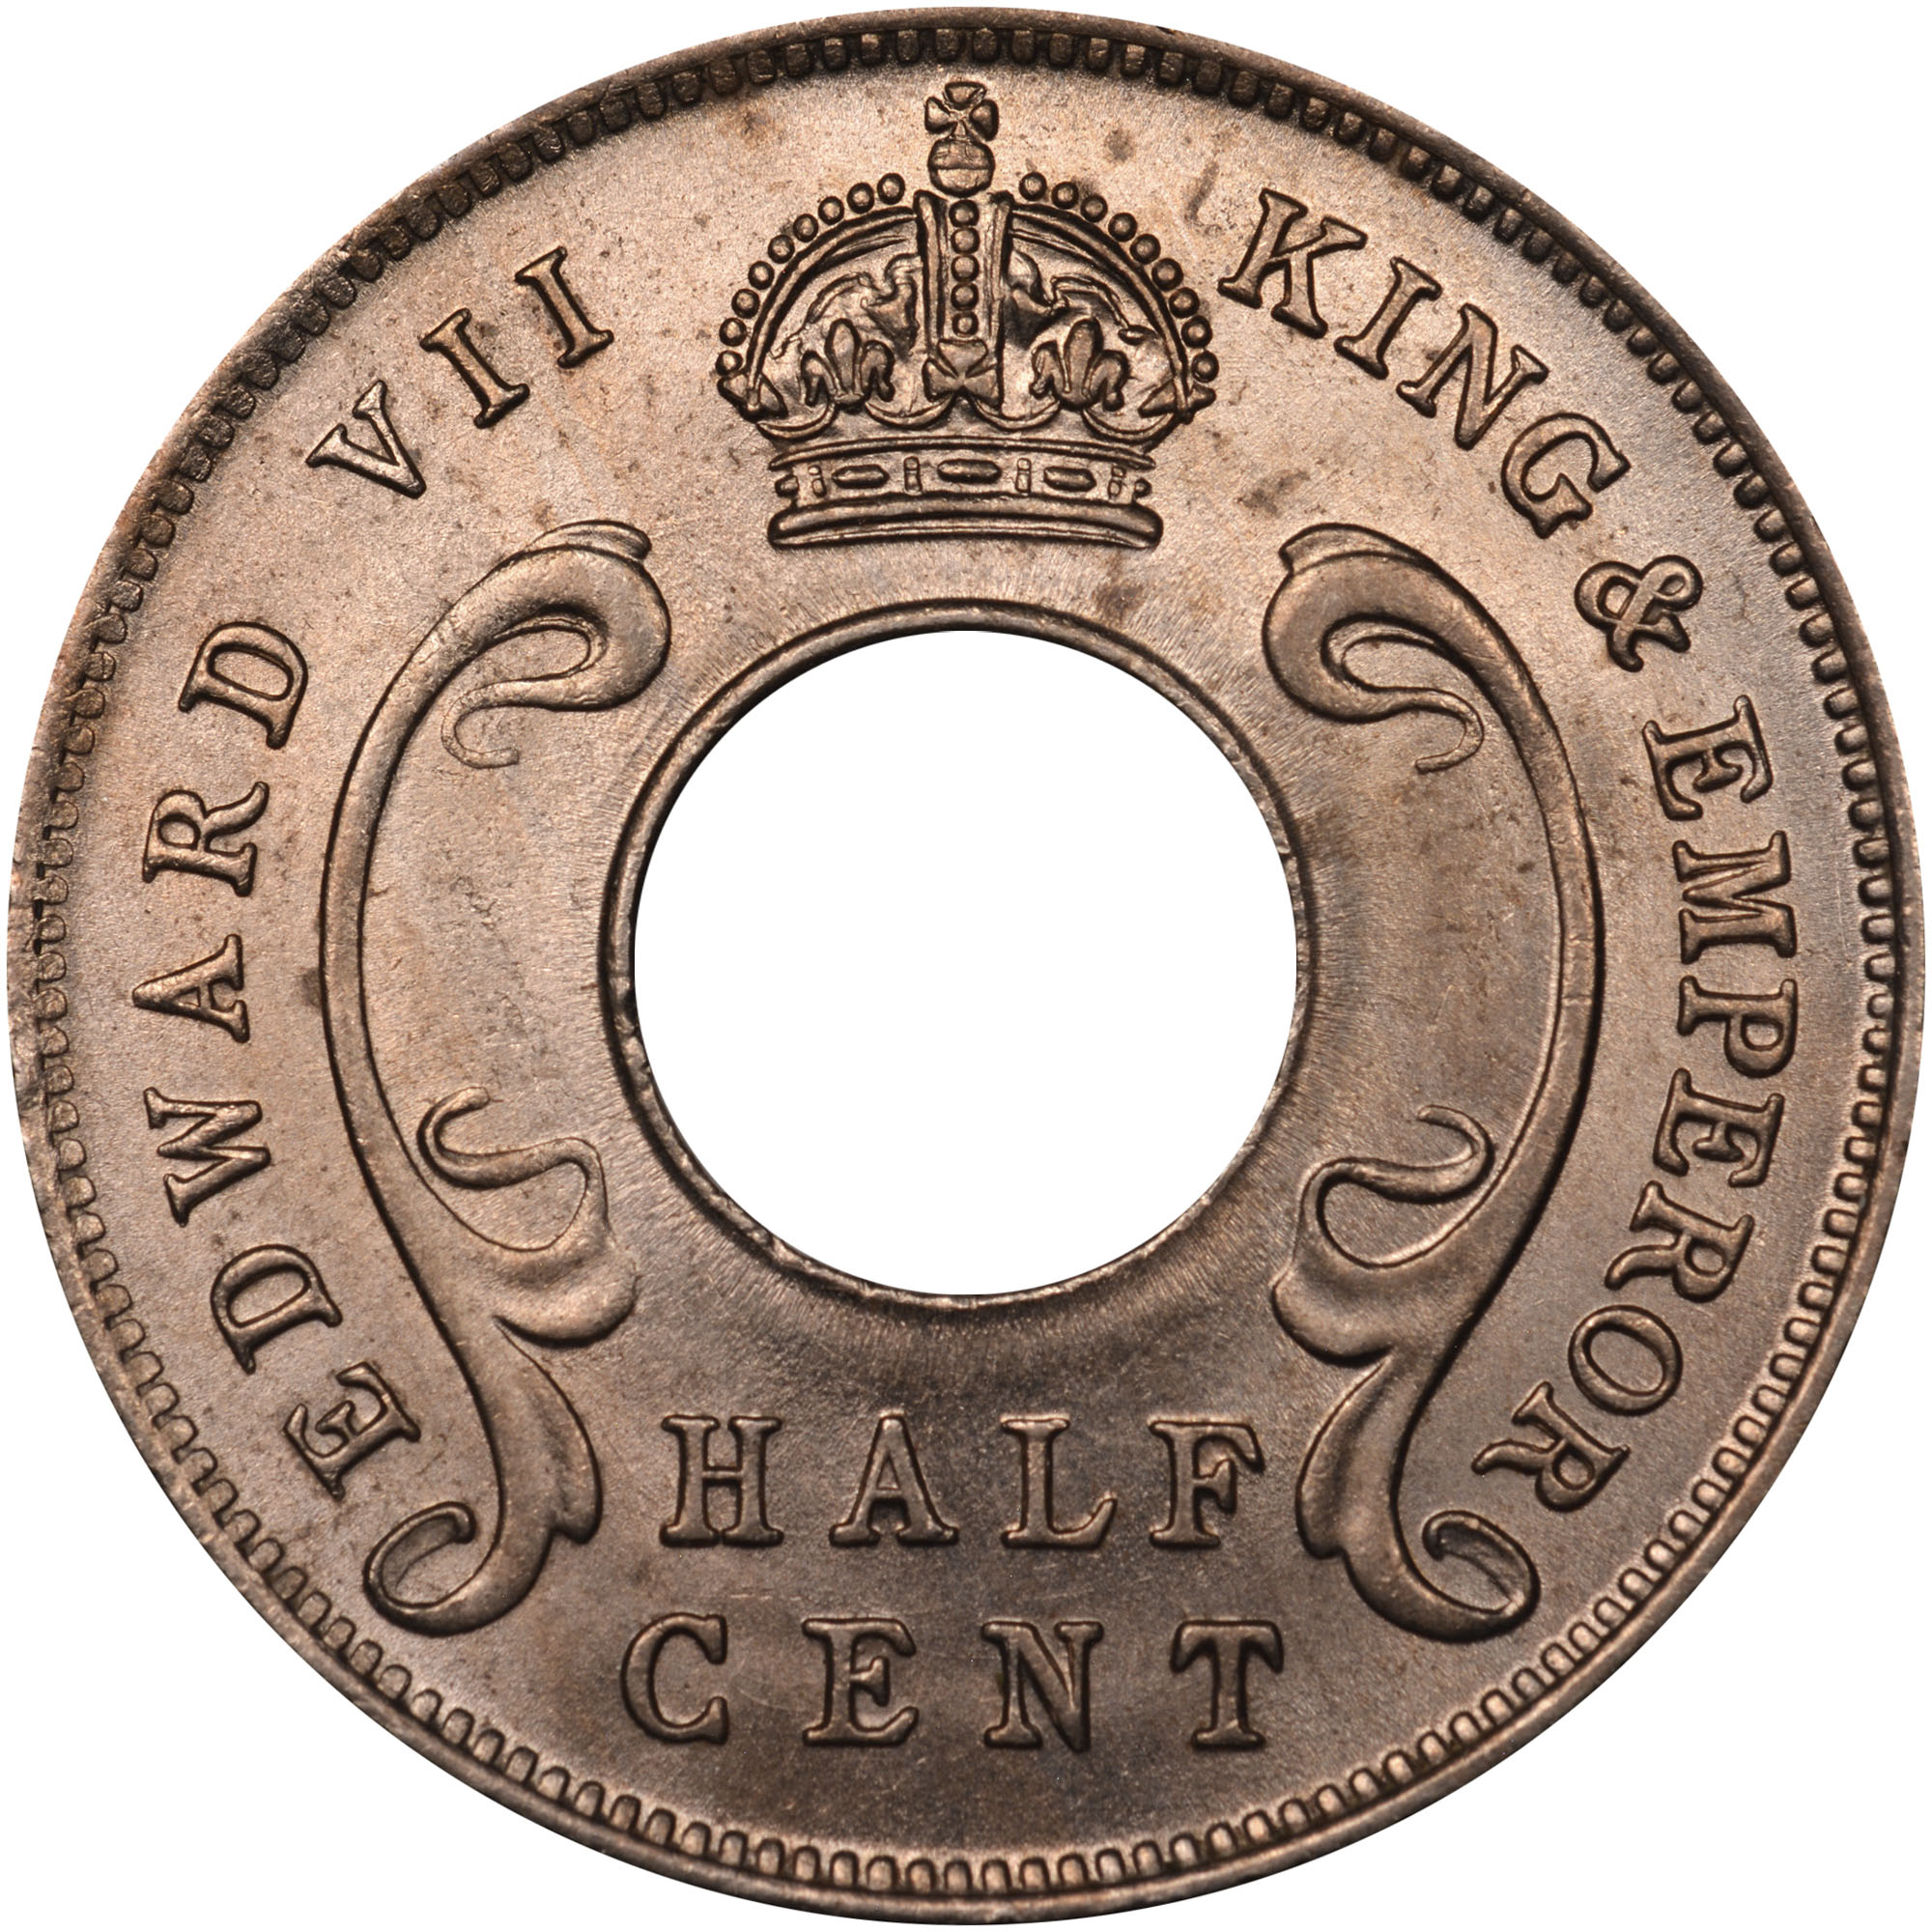 East Africa 1/2 Cent obverse